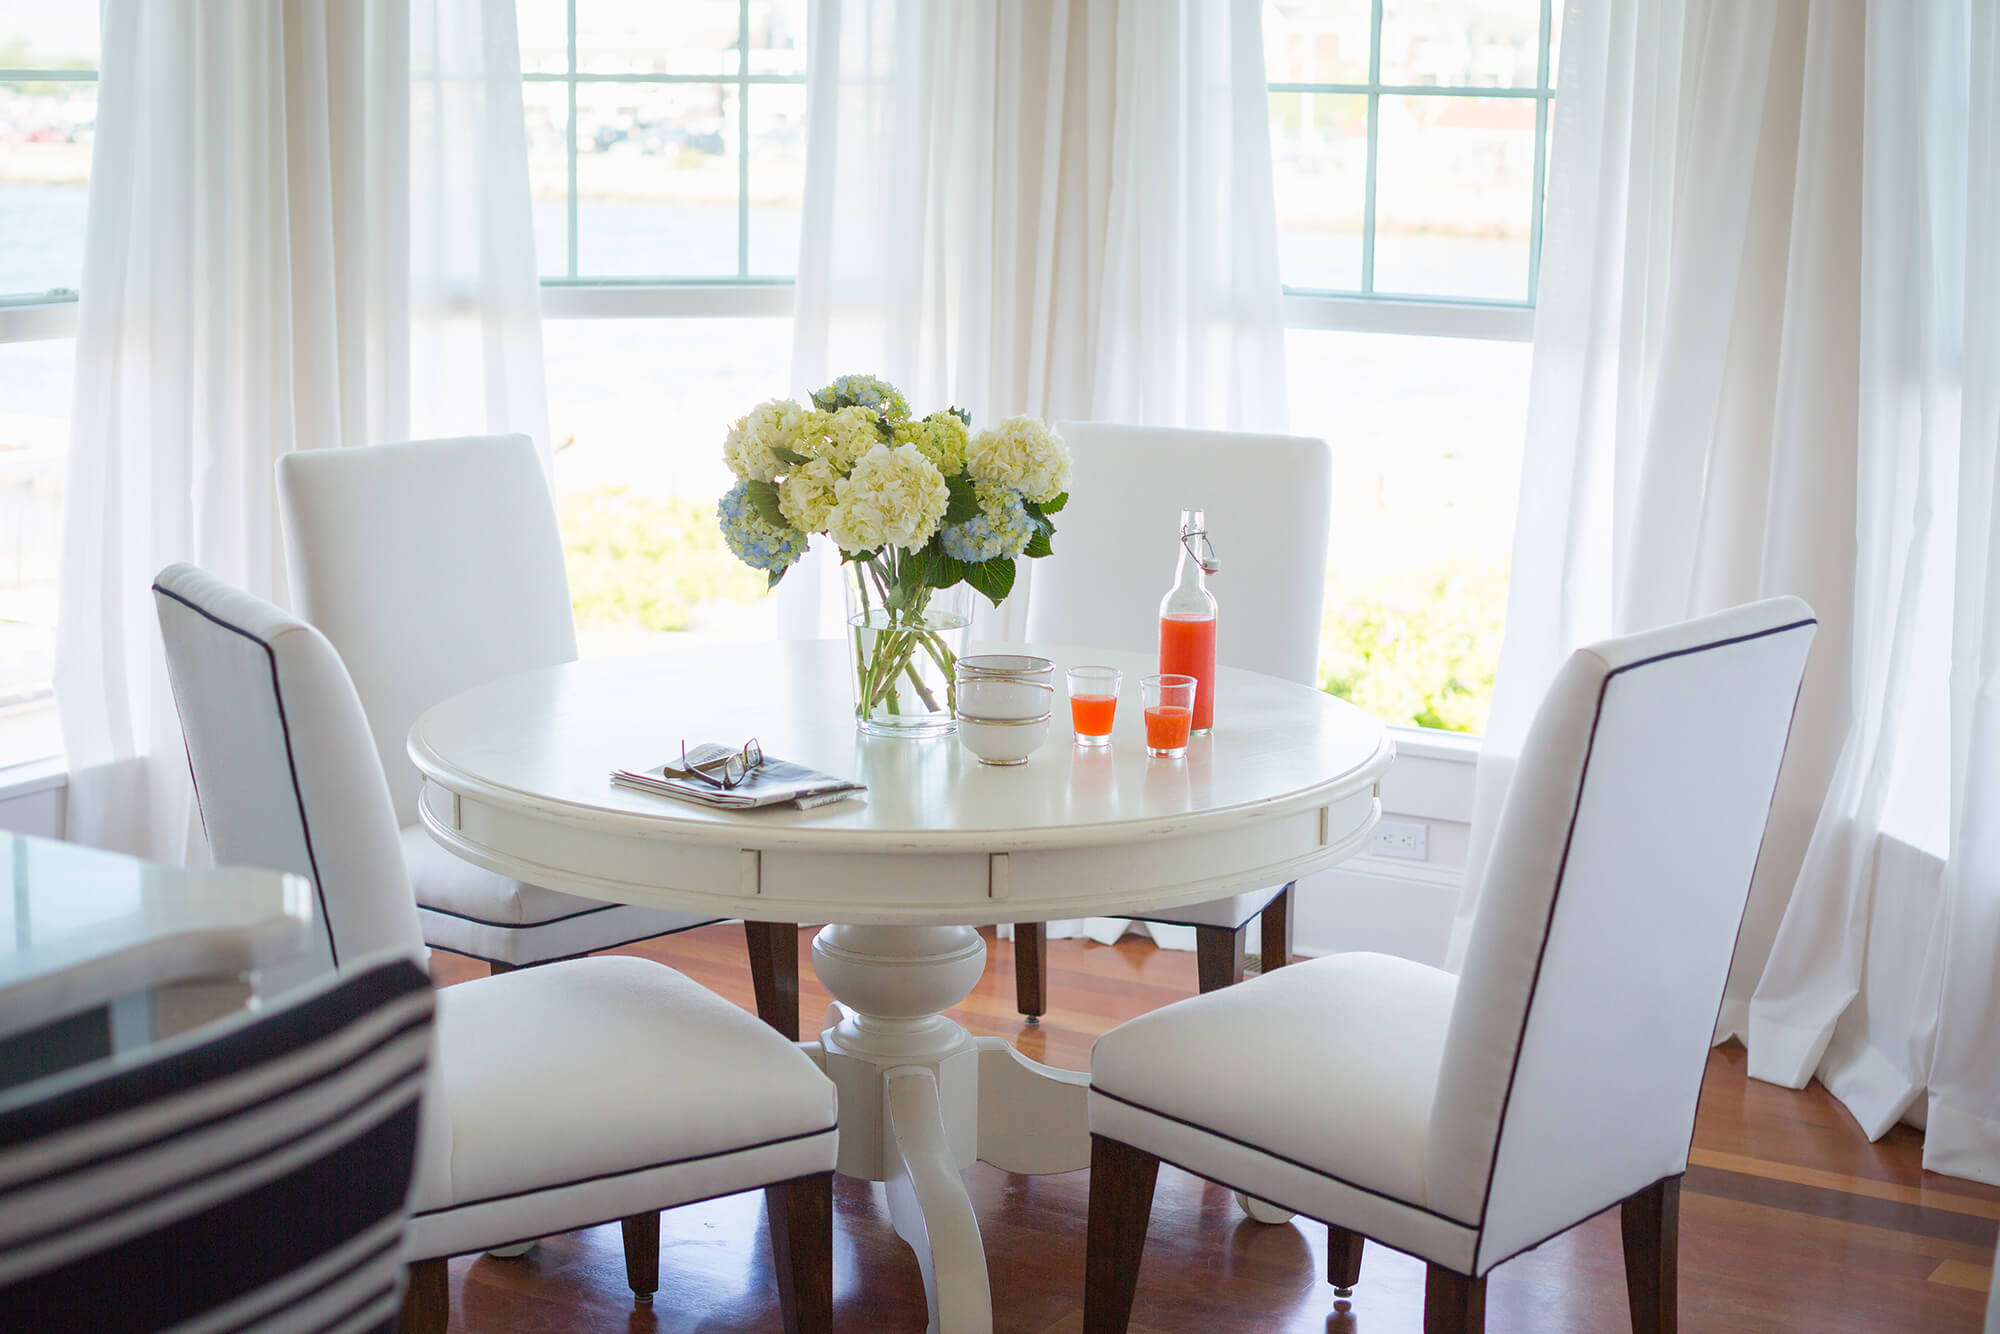 Flowing Sunbrella Sheer drapery add romance to a dining room